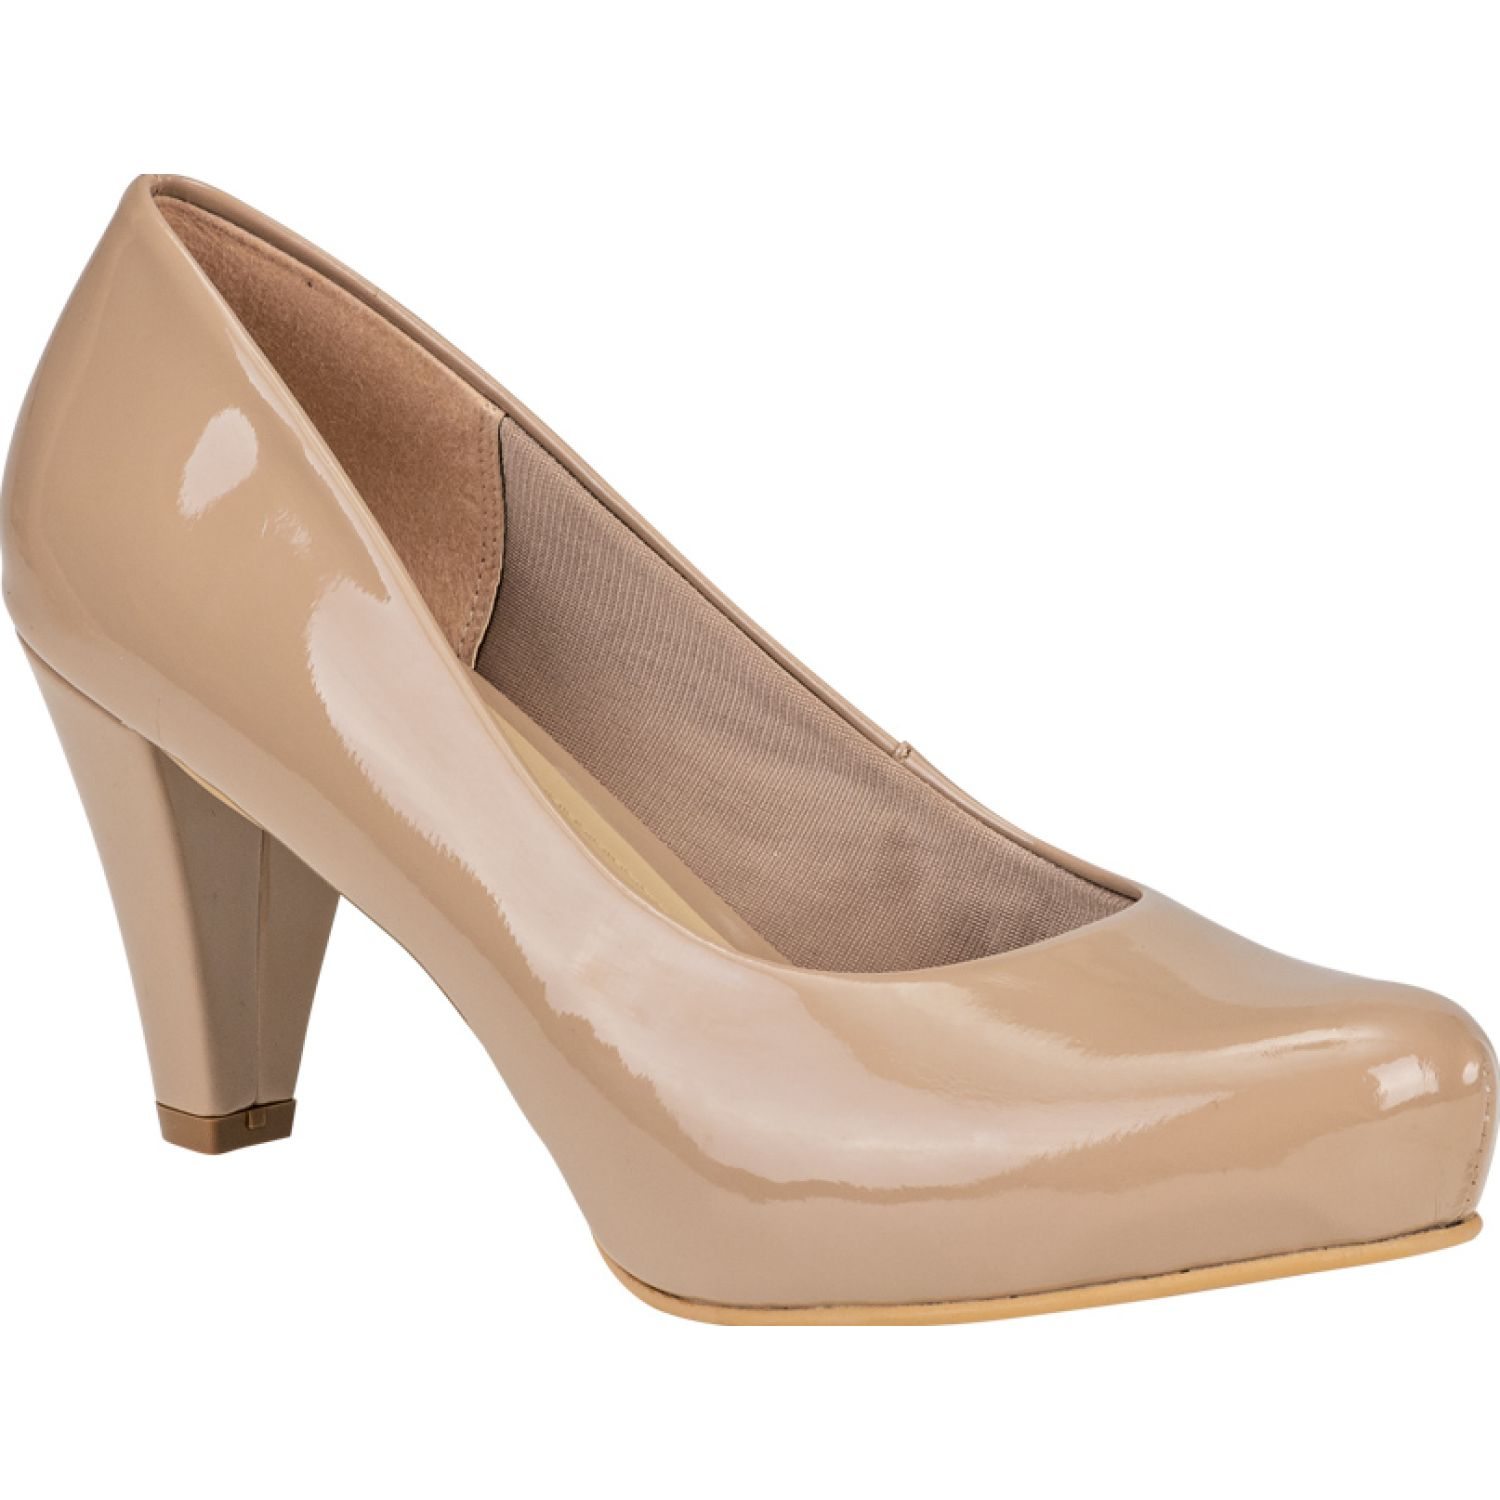 FOOTLOOSE Fs-01i20 BEIGE Estiletos y pumps